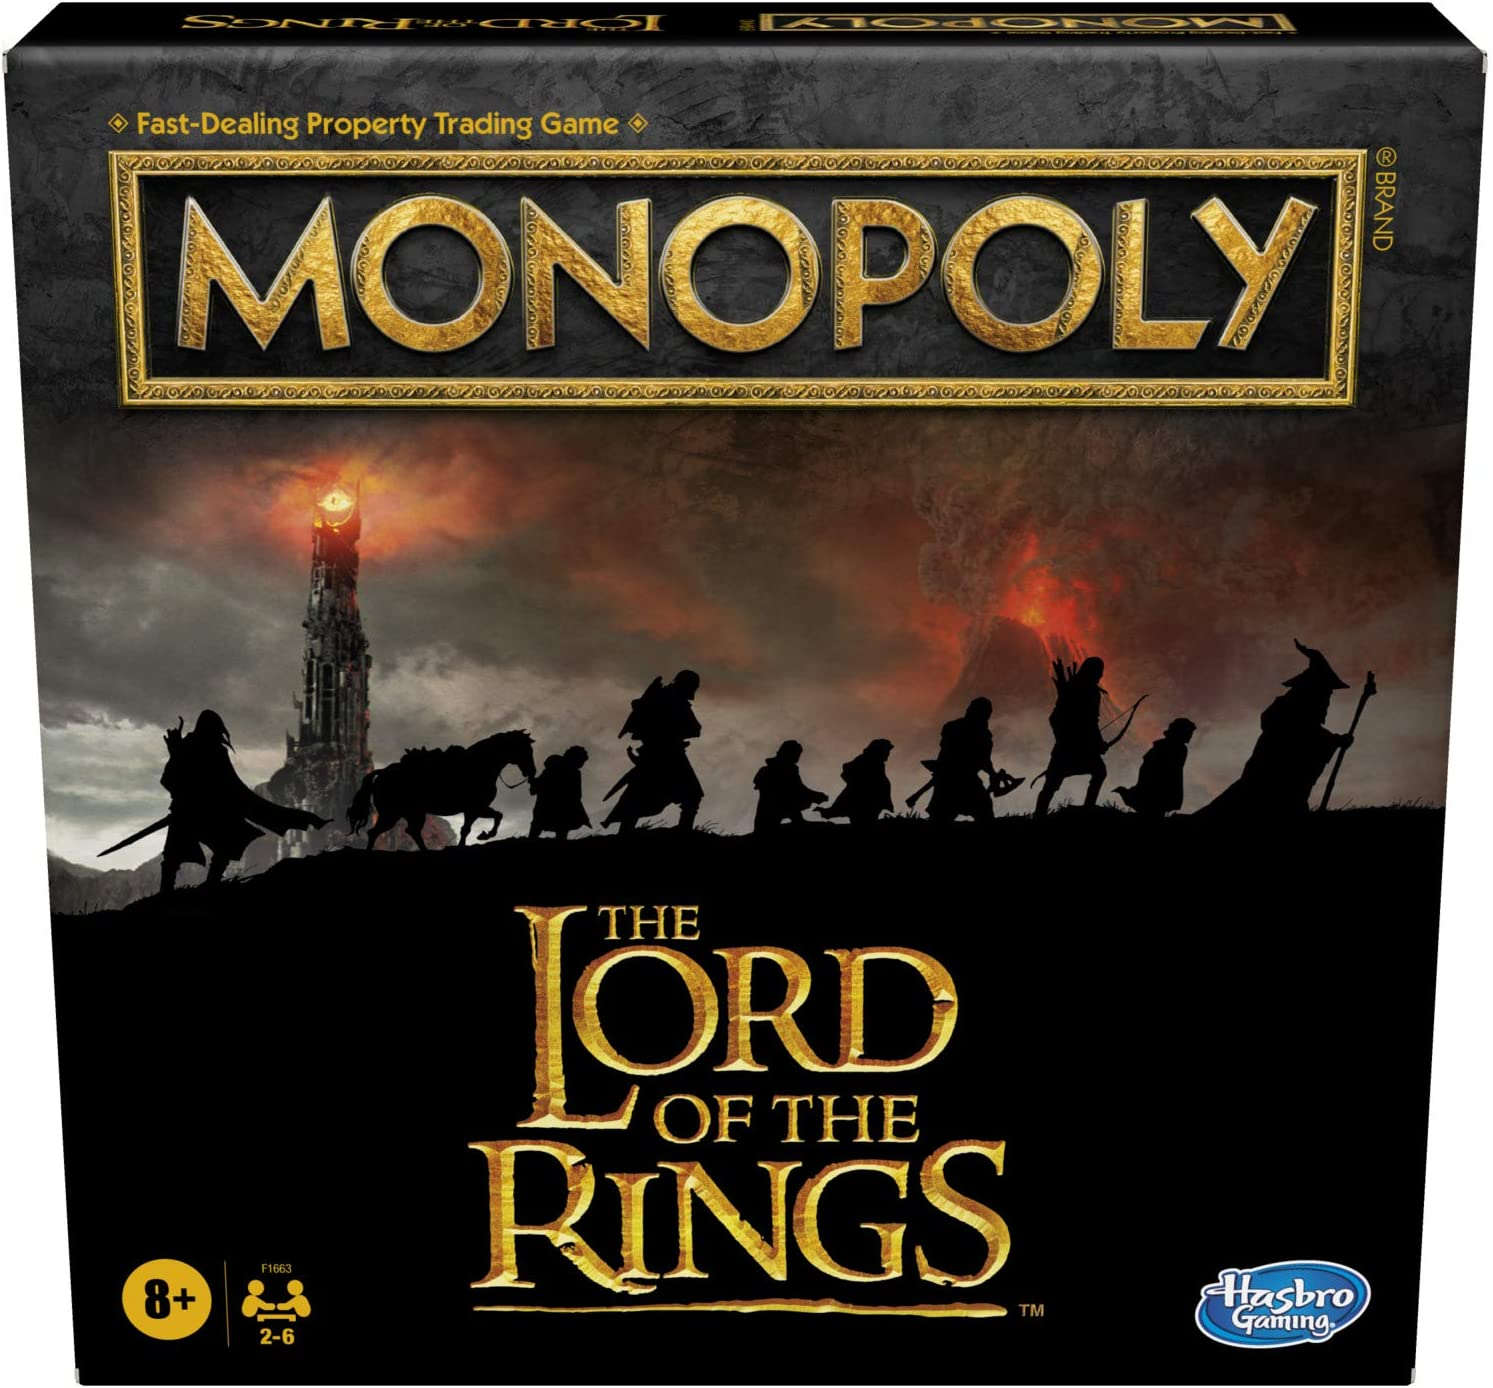 Hasbro Games Monopoly: The Lord of The Rings Edition Board Game Inspired by The Movie Trilogy, Play as a Member of The Fellowship, for Kids Ages 8 and Up (Amazon Exclusive)